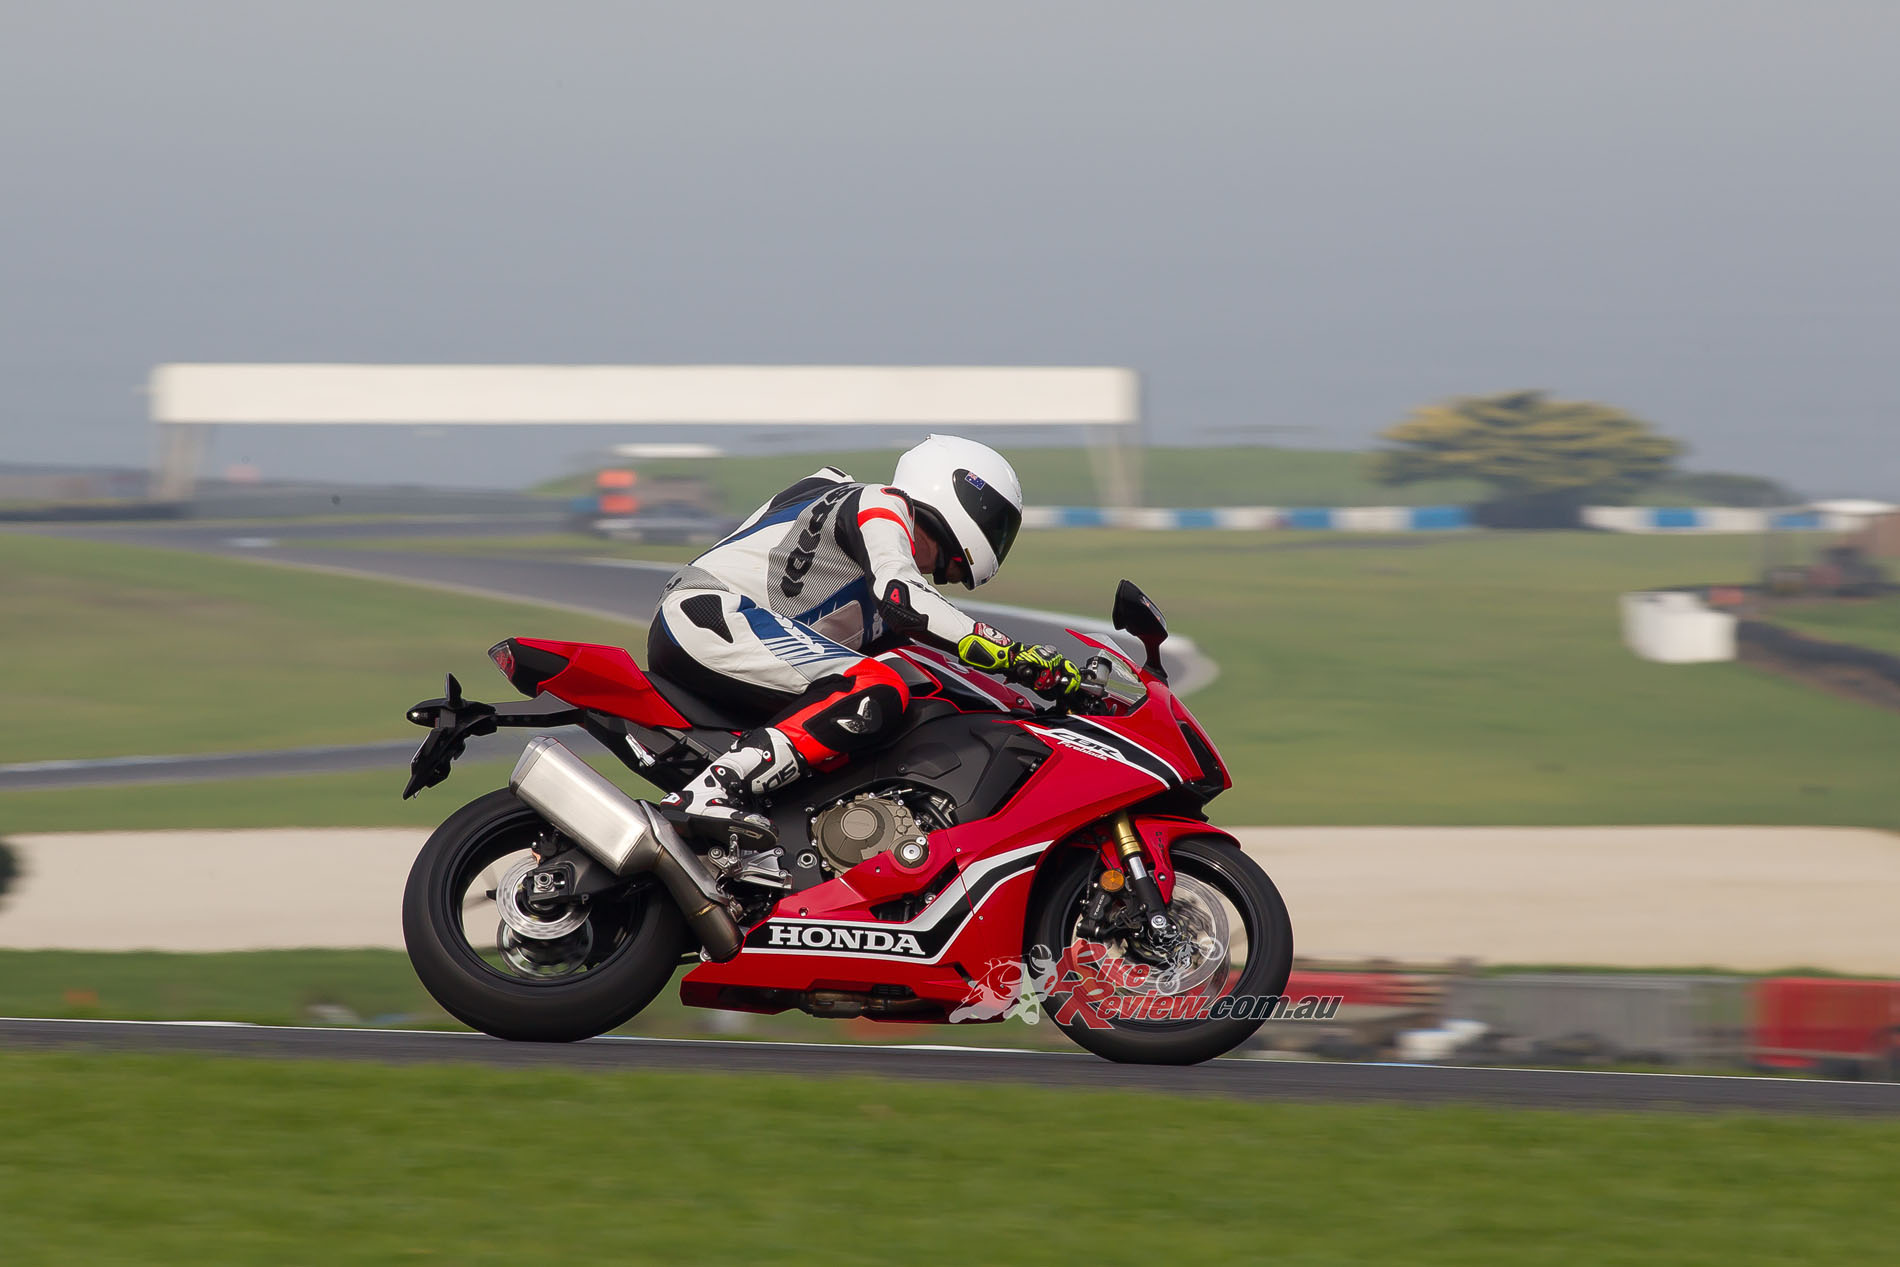 The Fireblade turns accurately and intuitively whether on the brakes or on the gas. It is a truly glorious chassis with good suspension support.